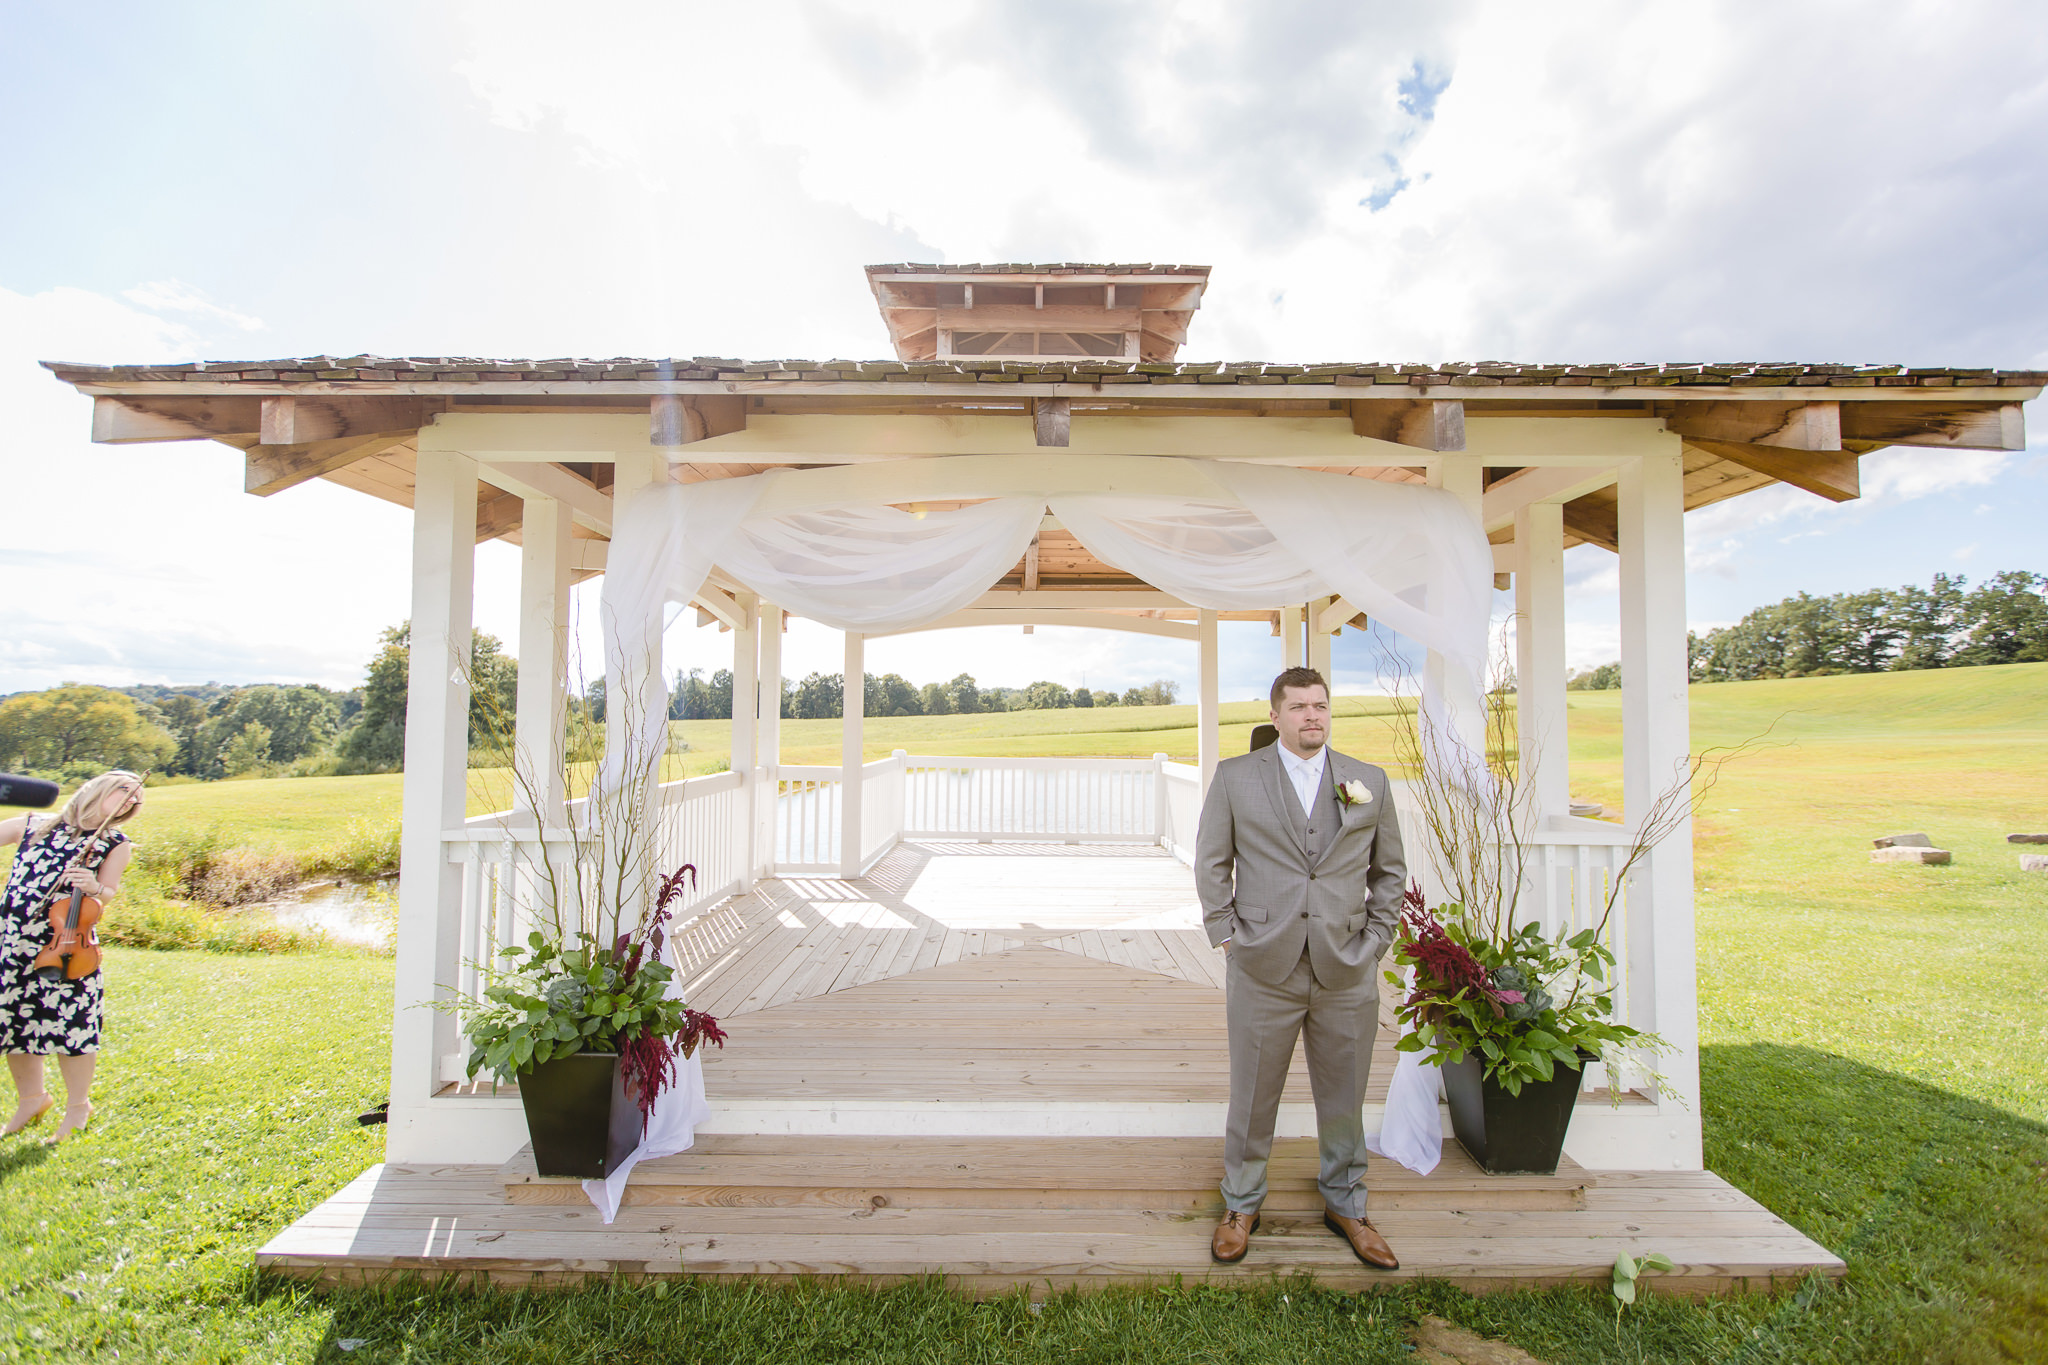 Groom gets in place for his outdoor wedding ceremony at White Barn